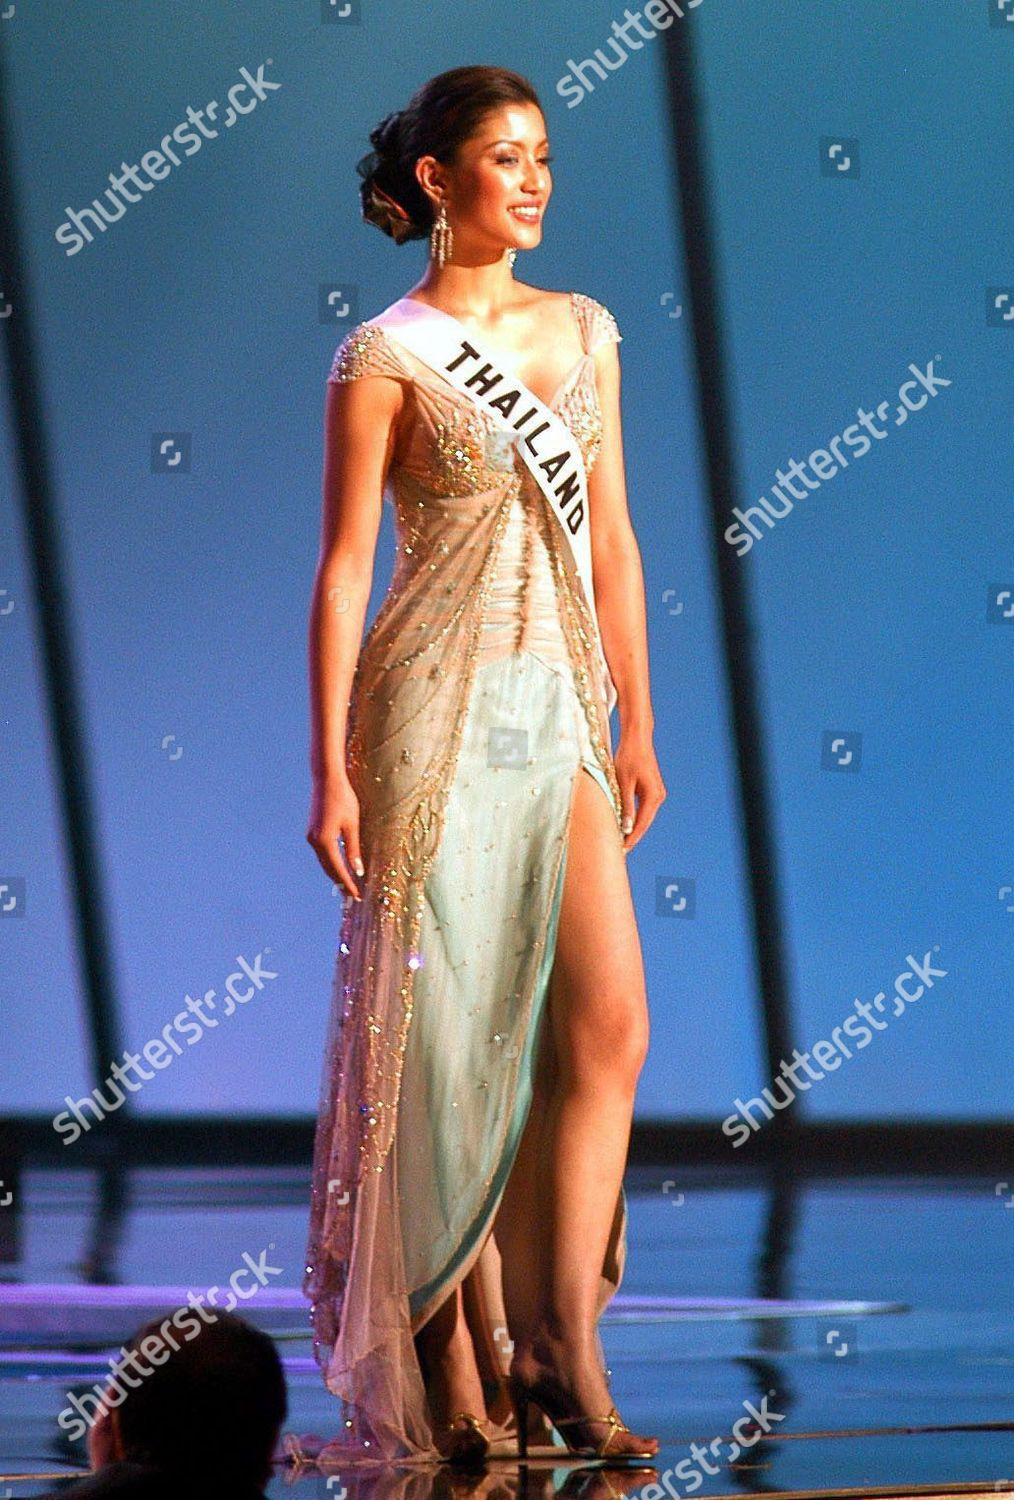 ecuador-miss-universe-evening-gowns-may-